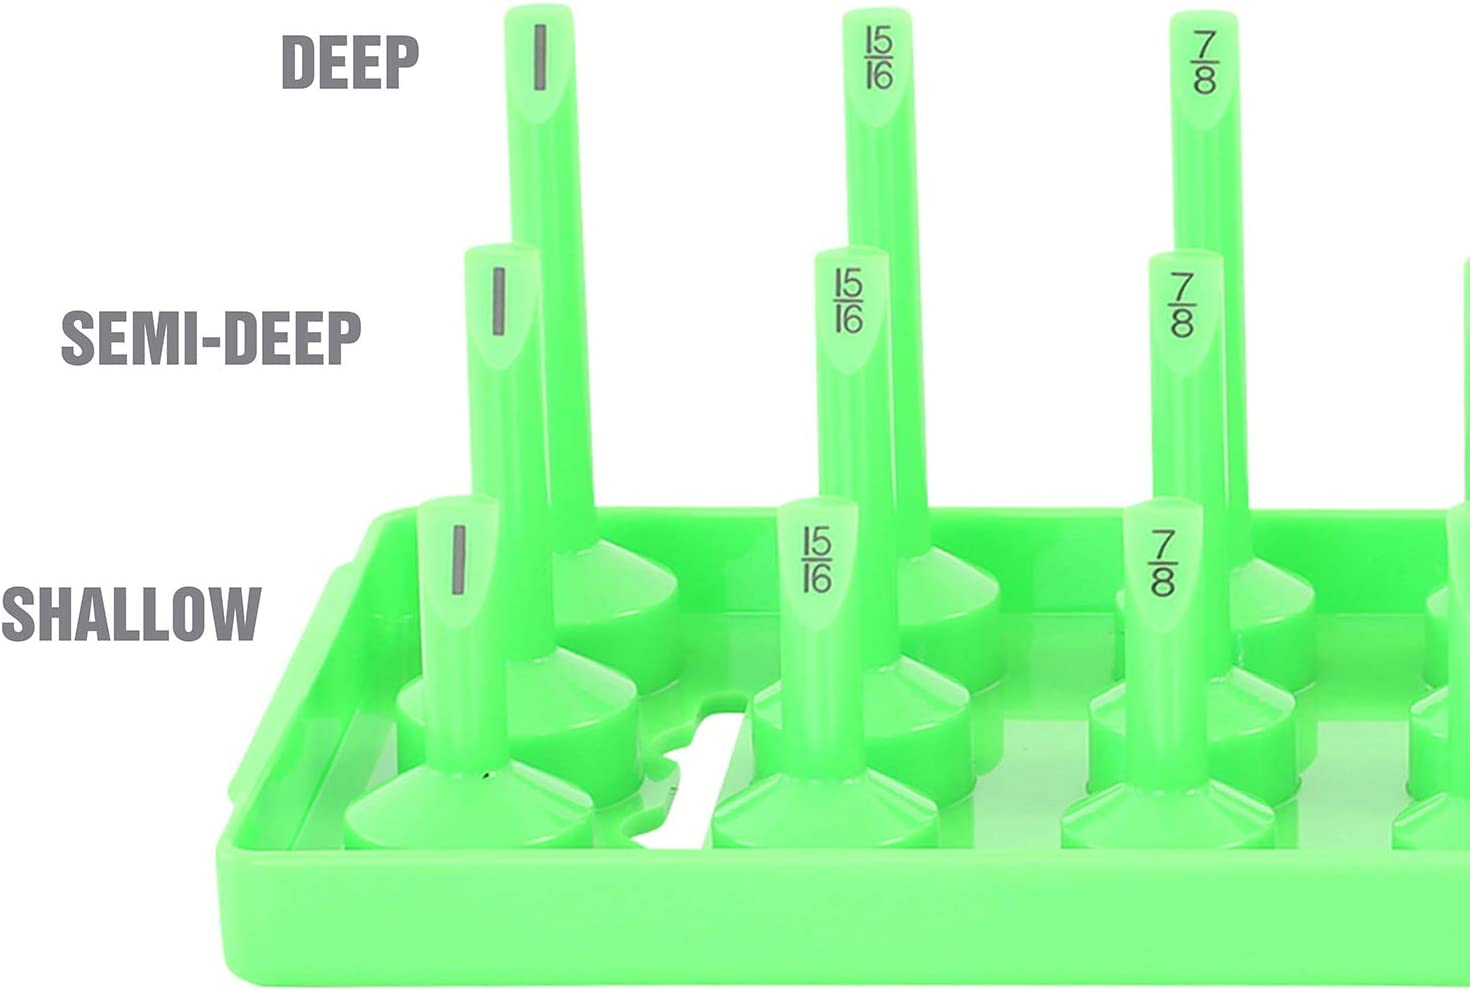 3//8 Inch Drive and Impact Socket Organizers for Toolboxes OEMTOOLS 22338 Black 3 Post Metric Socket Tray Set 3 Piece and 1//2 Inch Drive 1//4 Inch Drive Shallow Deep Holds 141 Metric Sockets